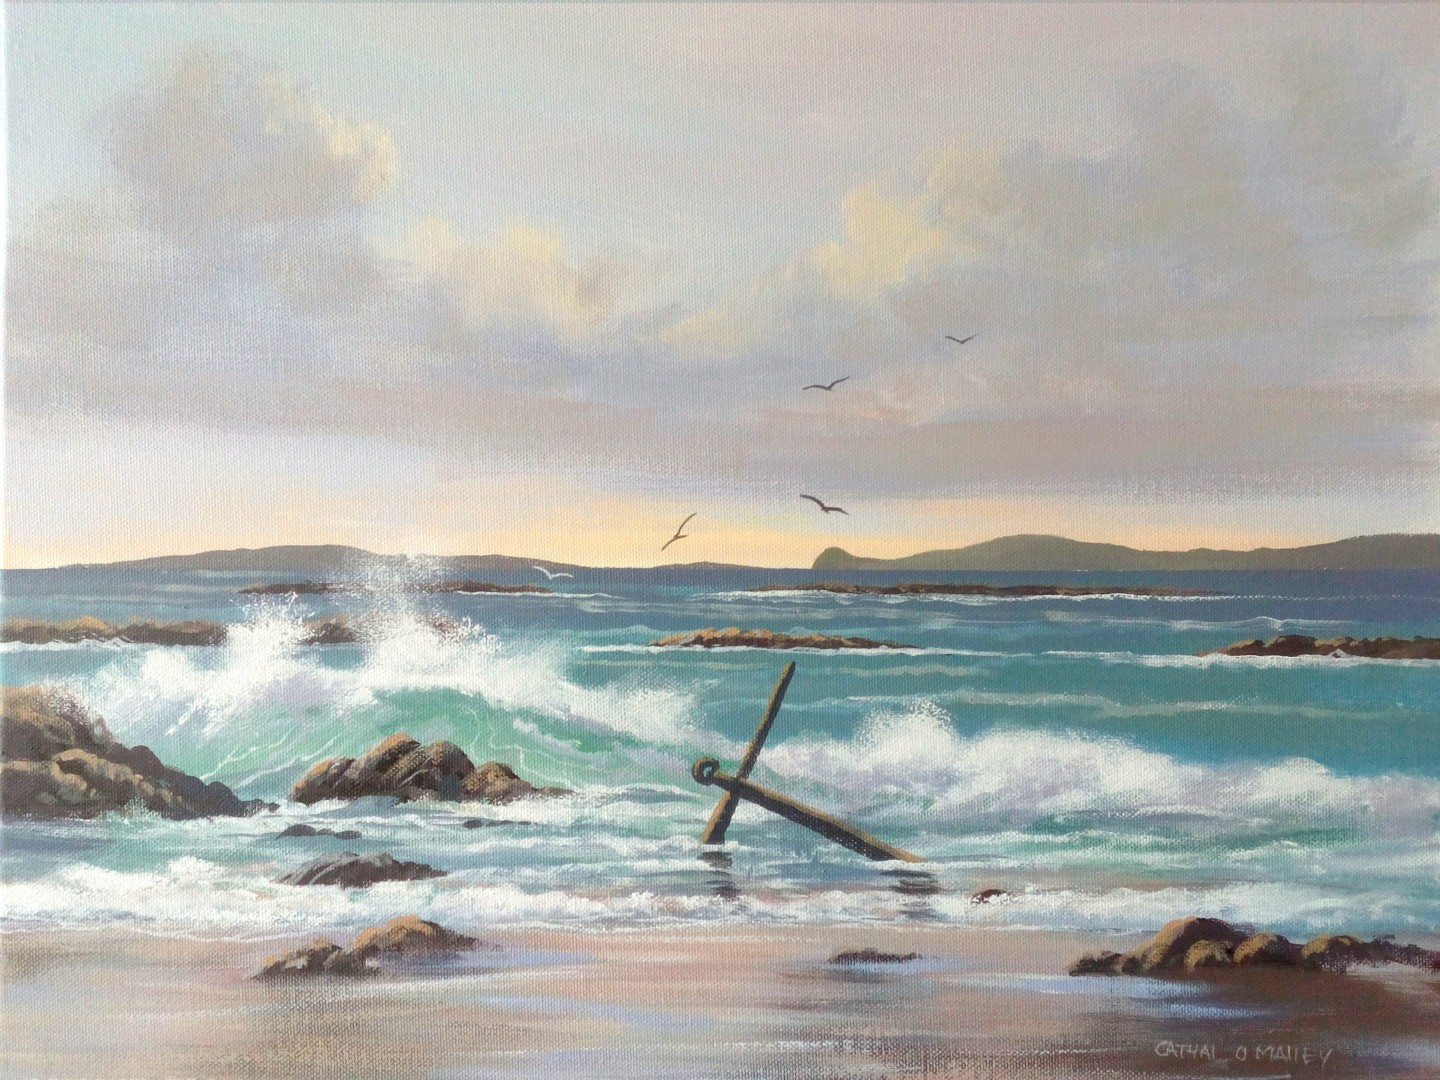 Cathal O Malley - Anchor beach in may